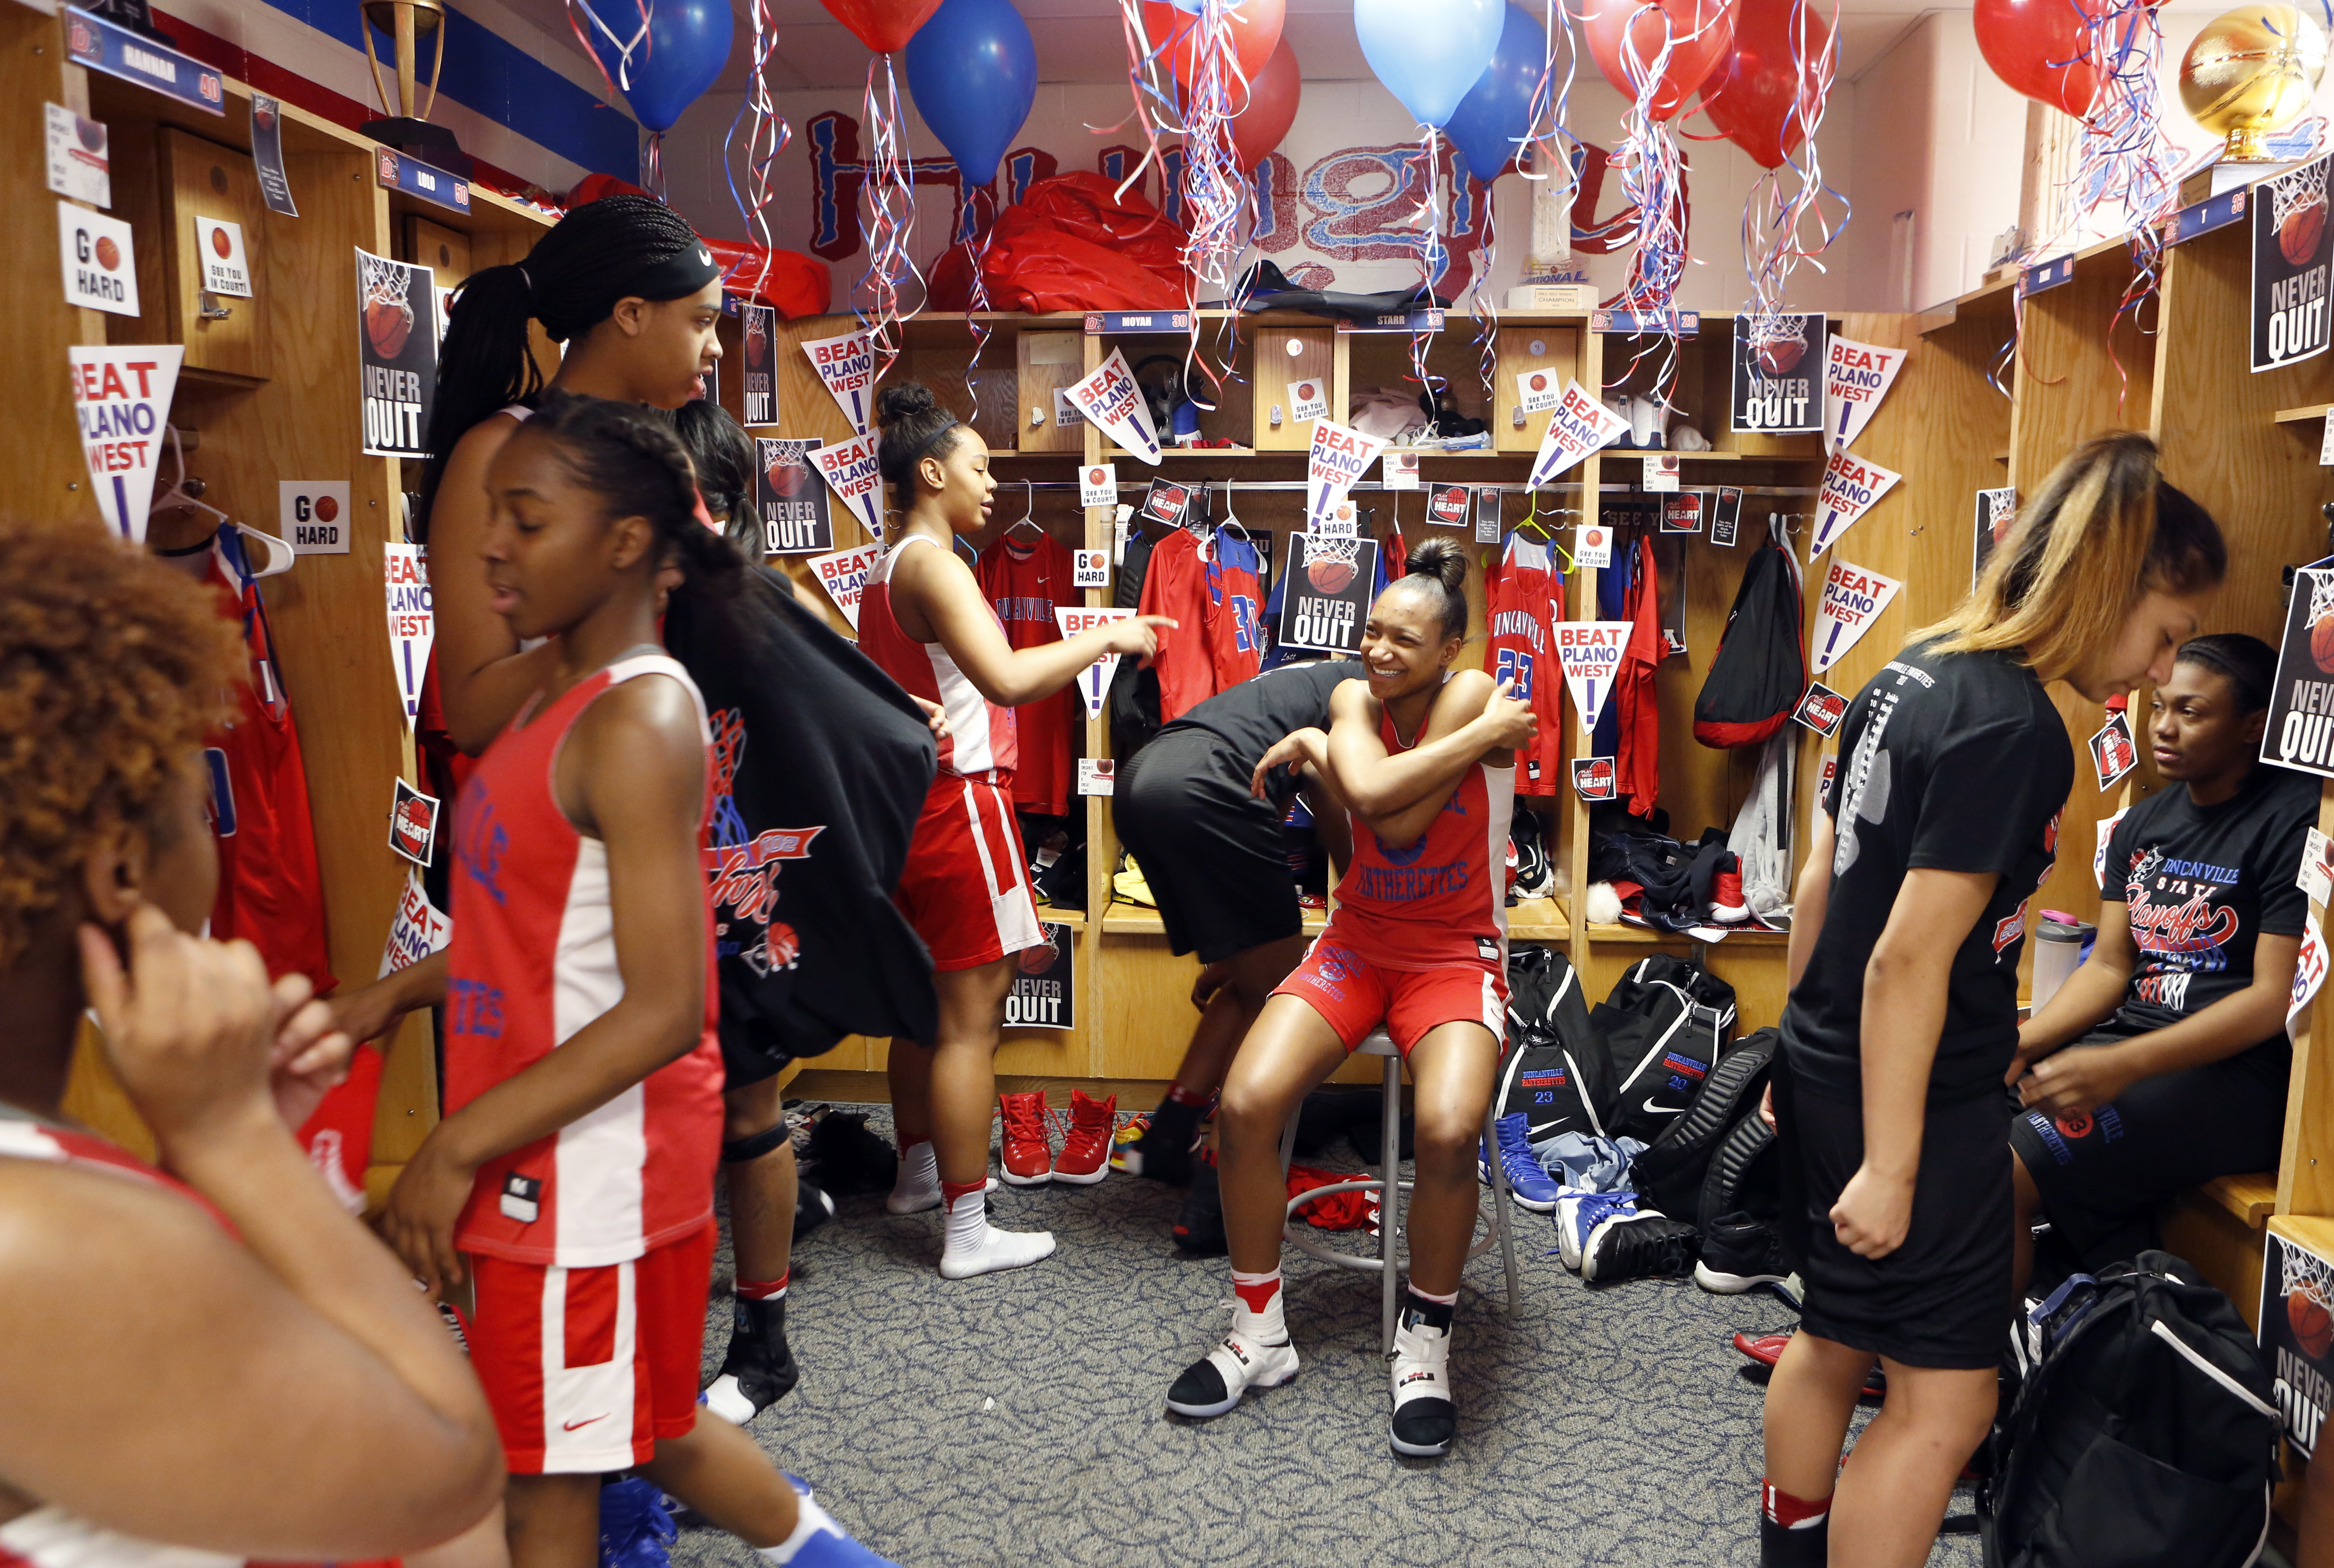 Junior Guard Aniya Thomas (center) and other Duncanville Pantherettes in the locker room after practice at Duncanville High School. Photographed in Duncanville, Texas on Friday, February 17, 2017. (photo © Lara Solt)